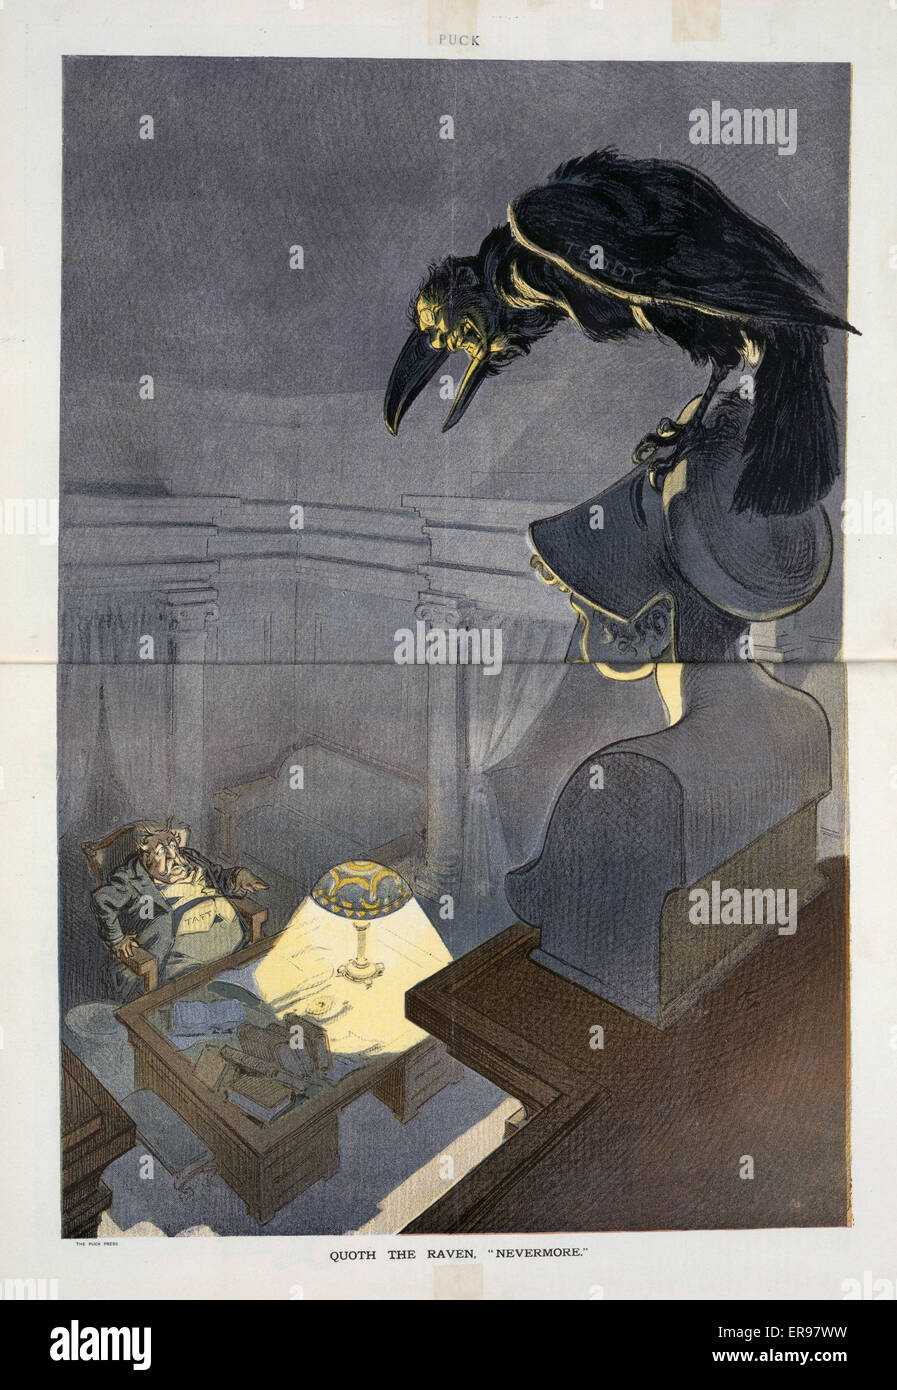 Quoth the raven, nevermore. Illustration shows President Taft sitting at a desk, working late, frightened, his hair Stock Photo